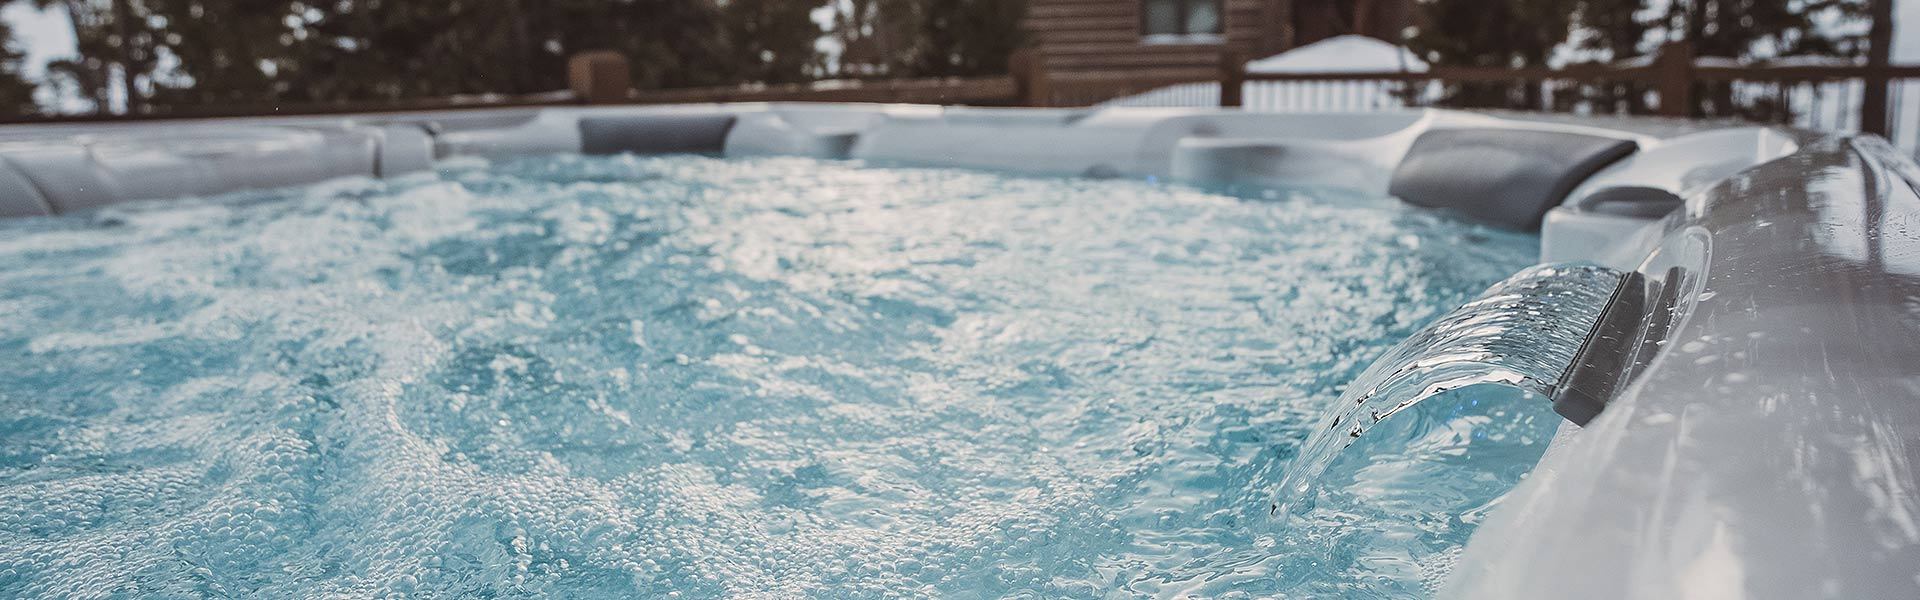 Thinking About Purchasing A Hot Tub? Please Read This First!